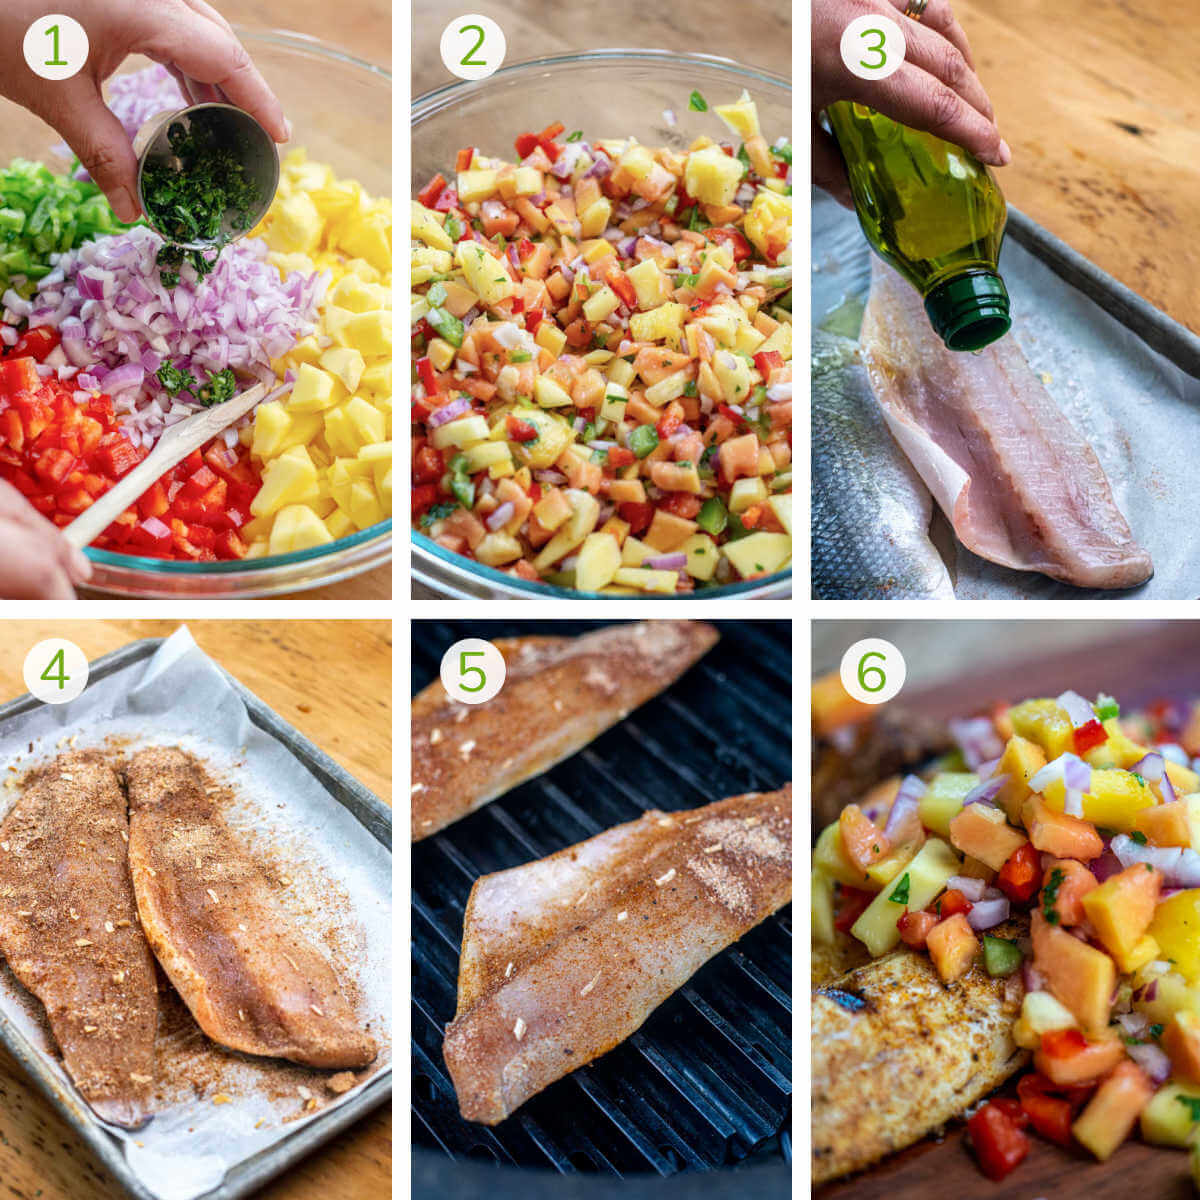 process photos showing making the Caribbean fruit salsa, adding the jerk seasoning to the fish and grilling the Branzino.